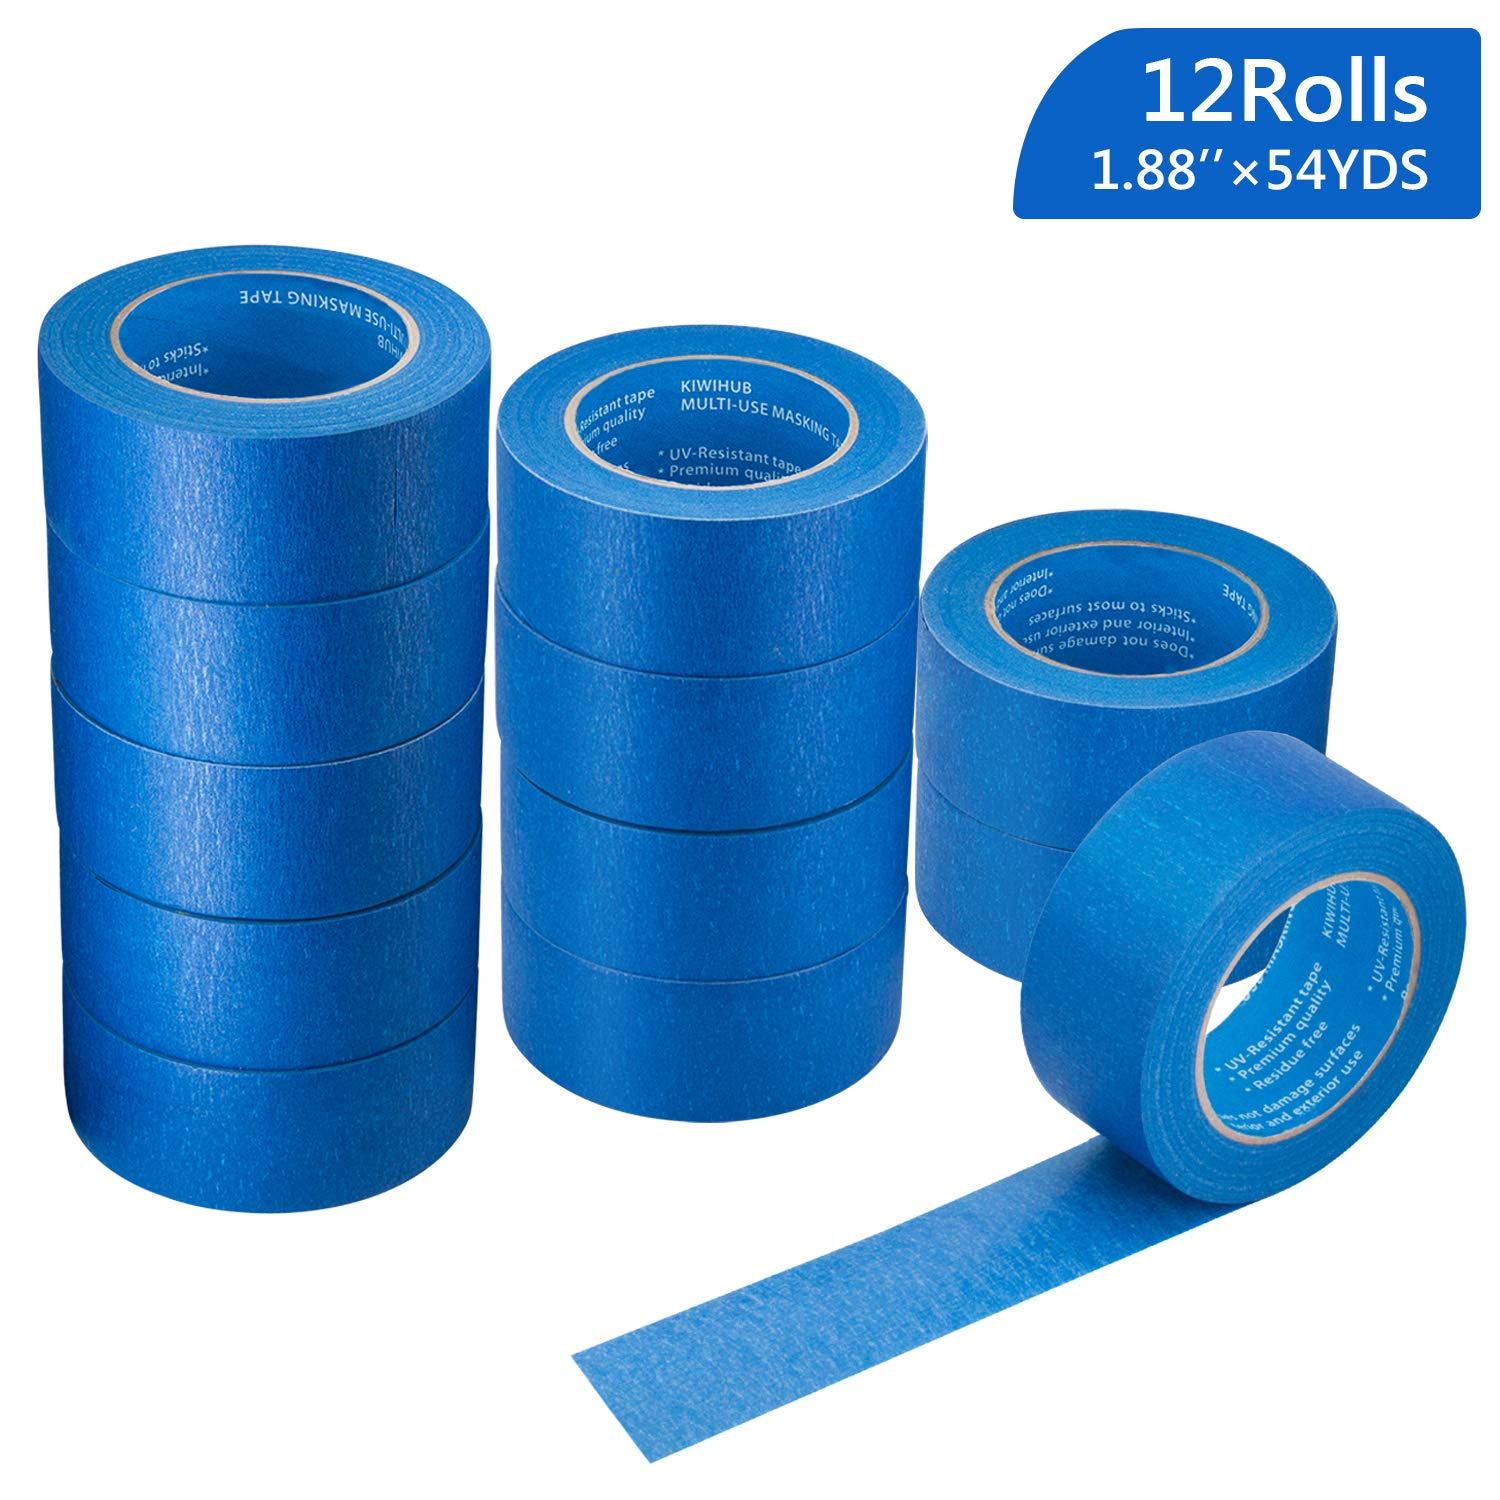 12 Rolls 2'' (1.88''/48mm) X 54 YDs Pro-Grade Blue Painters Tape, Medium Adhesive That Sticks Well but Leaves no Residue Behind by KIWIHUB by KIWIHUB